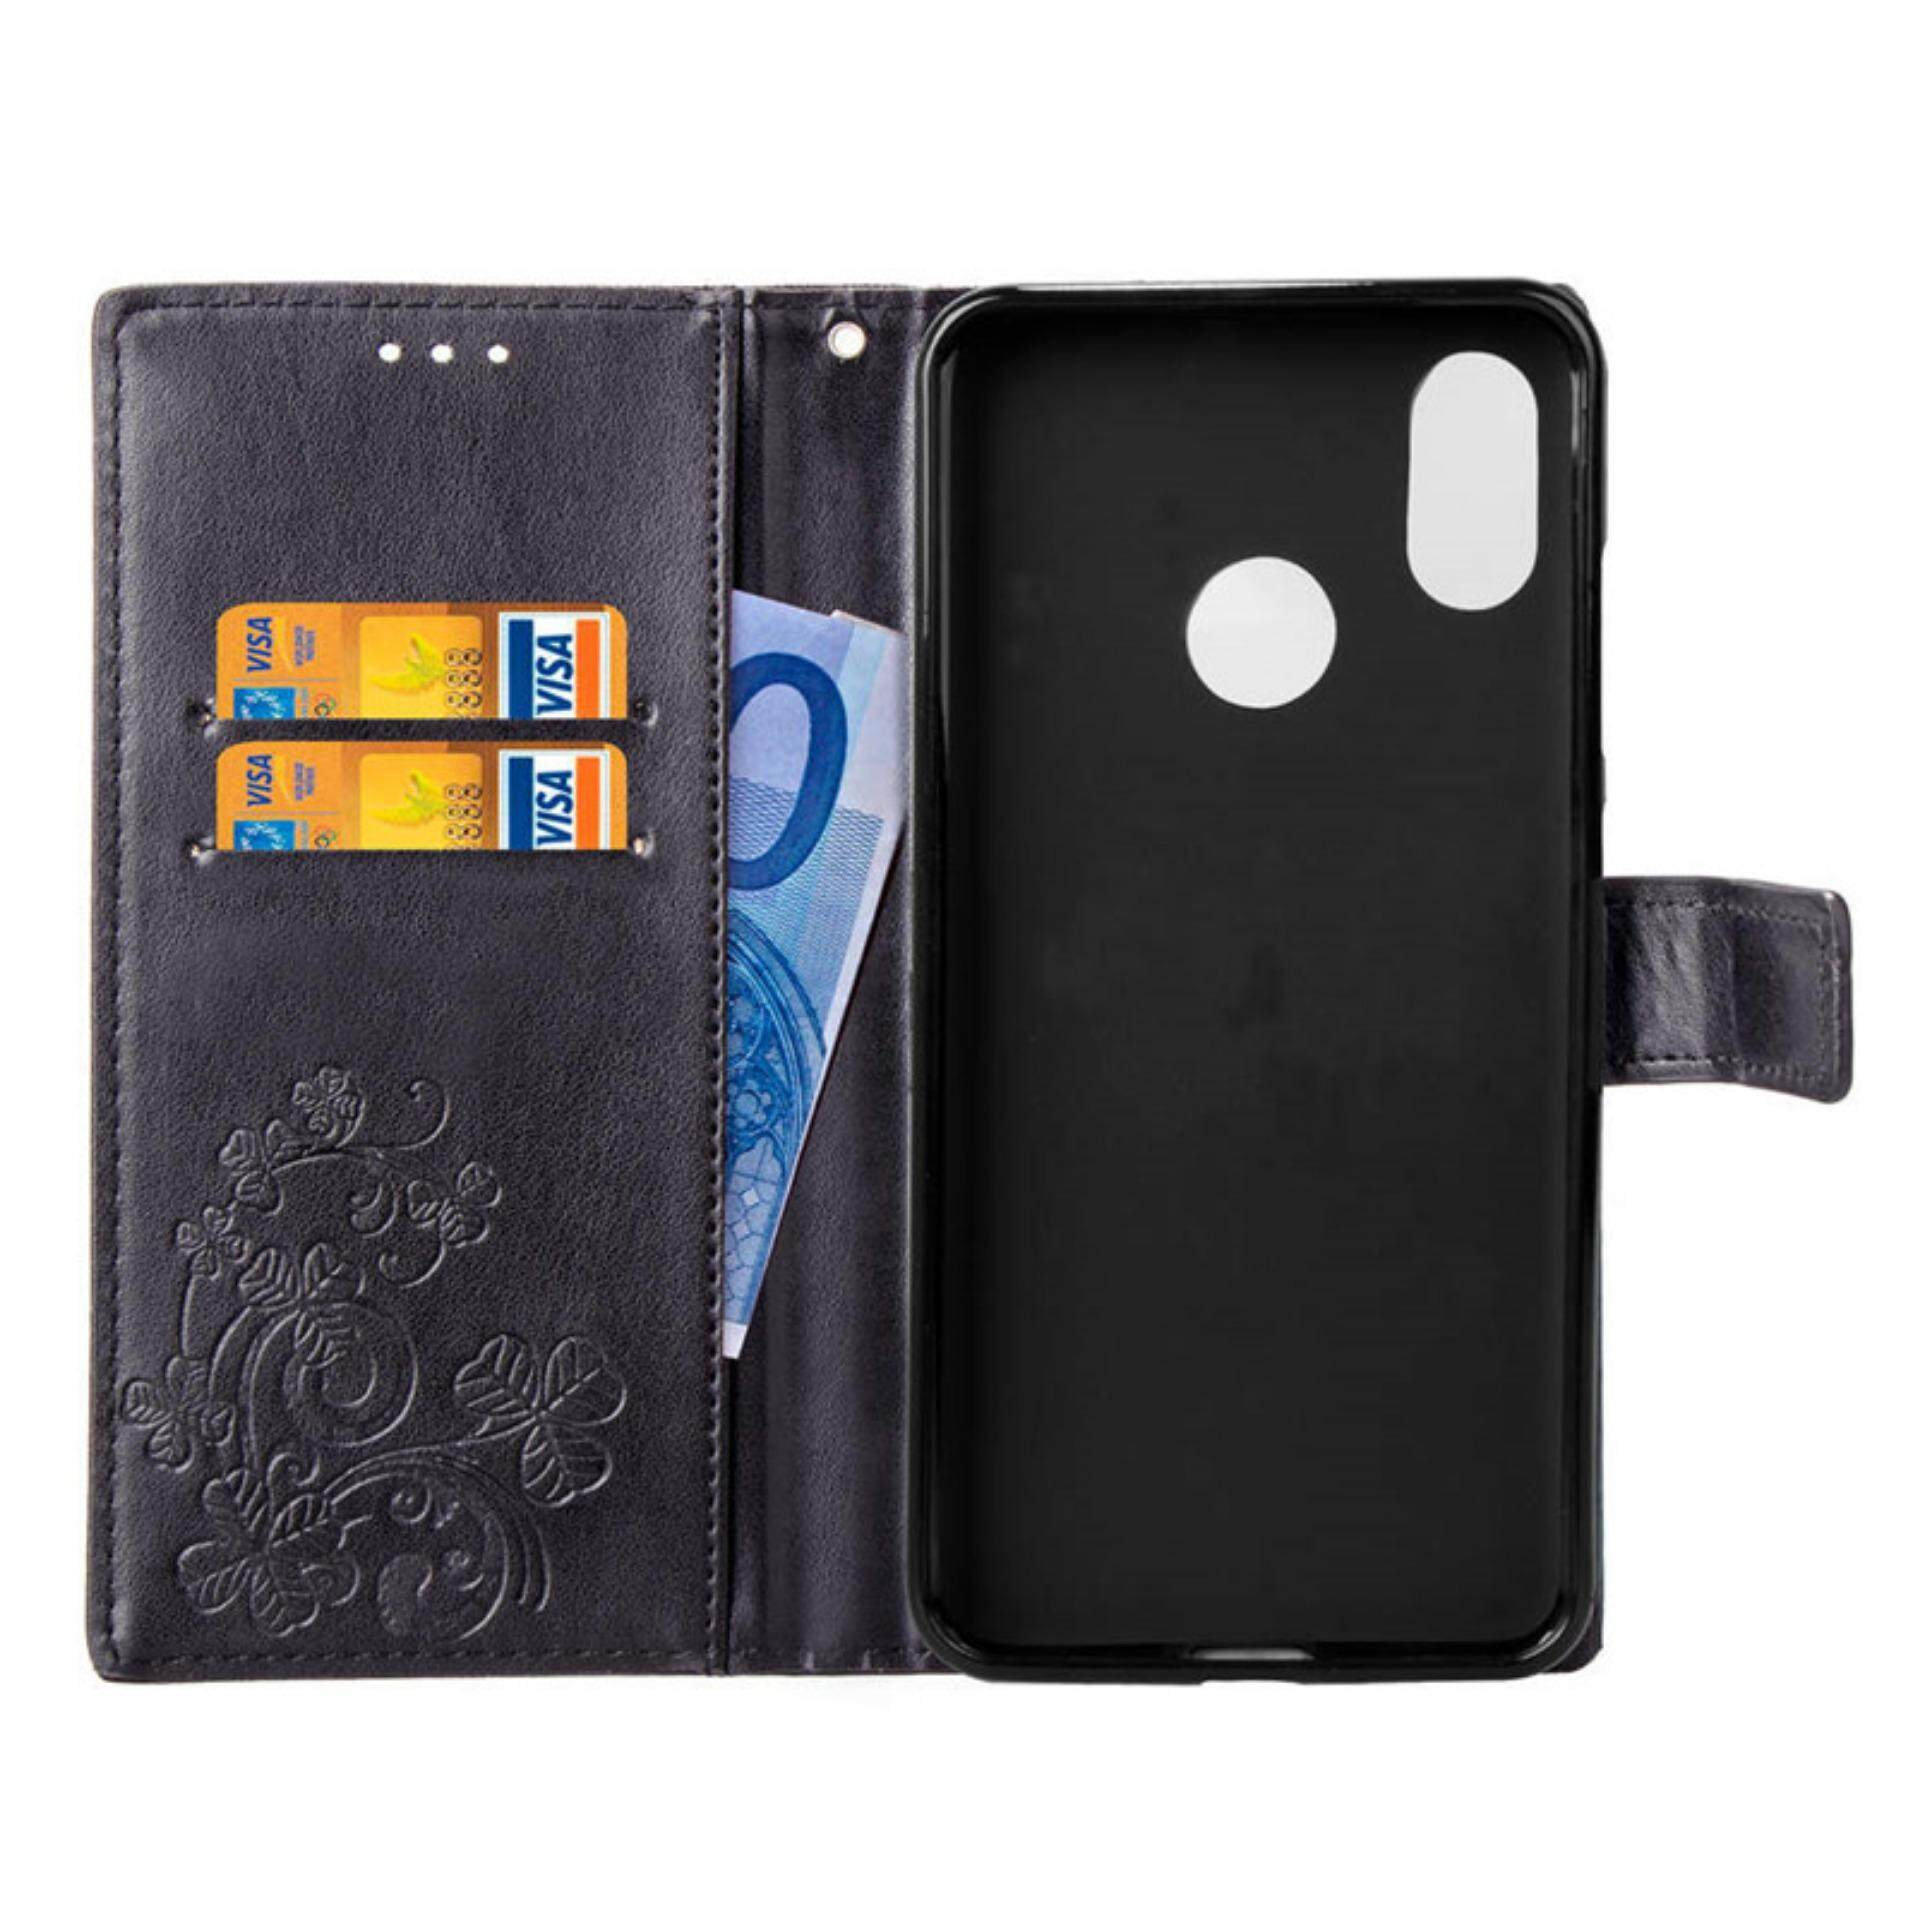 Flower Debossed Leather Flip Cover Case for Xiaomi Mi 8 - 4 .